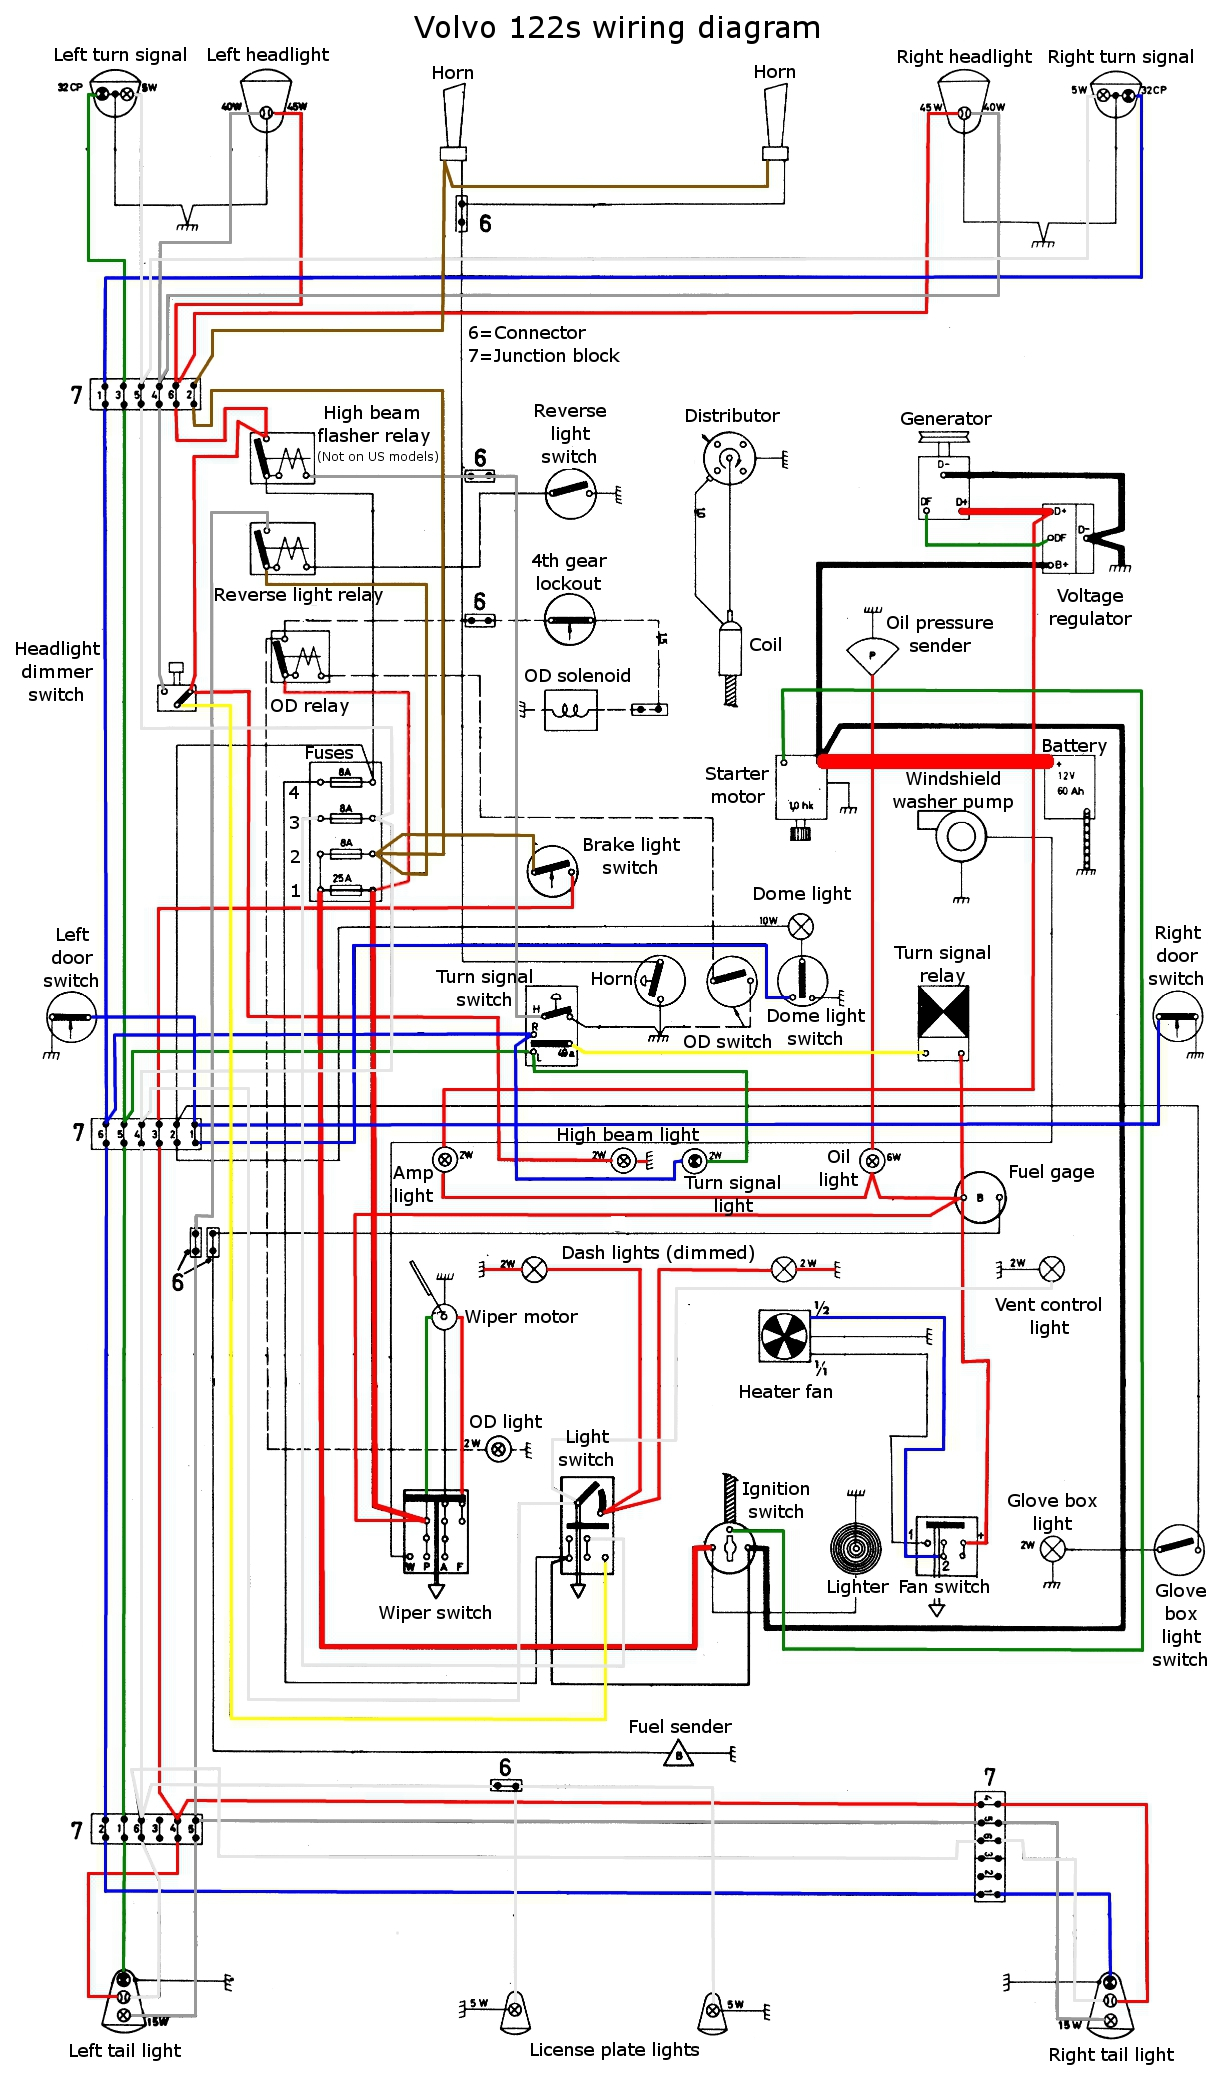 122 wiring diagram color 2005 volvo s40 wiring diagram volvo s40 steering diagram \u2022 wiring GM Radio Wiring Diagram at reclaimingppi.co